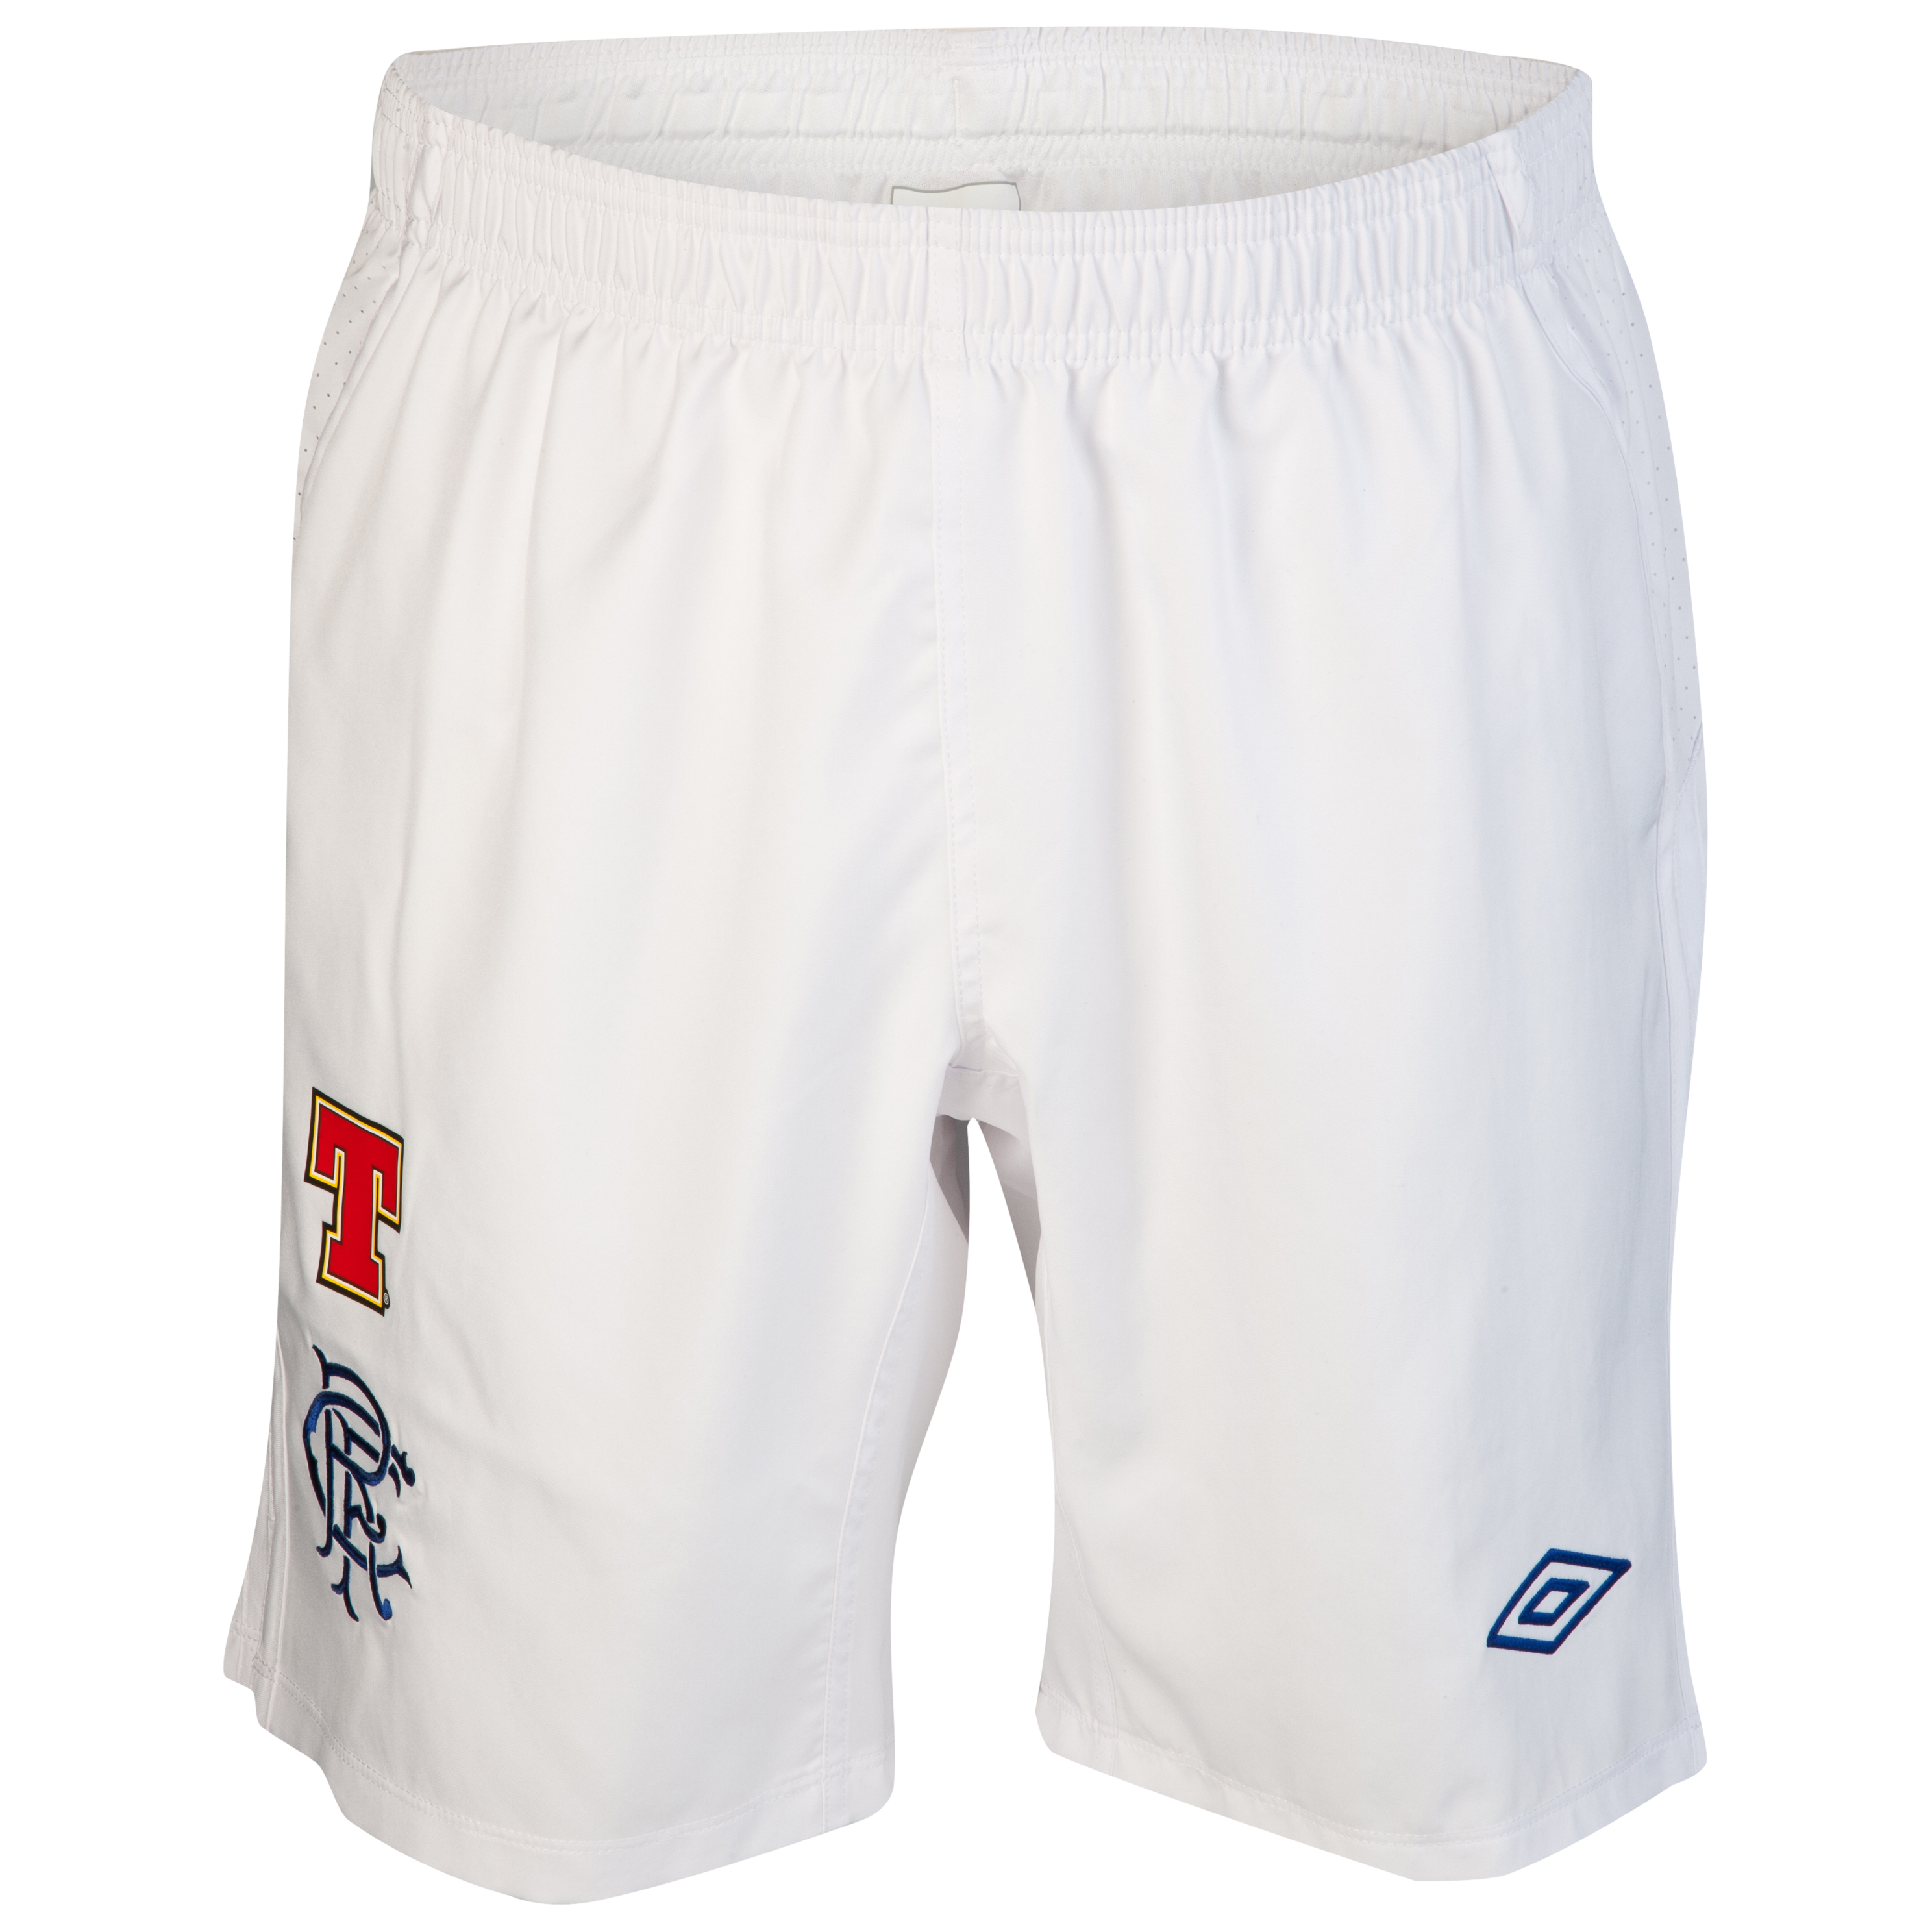 Glasgow Rangers Home Shorts 2012/13